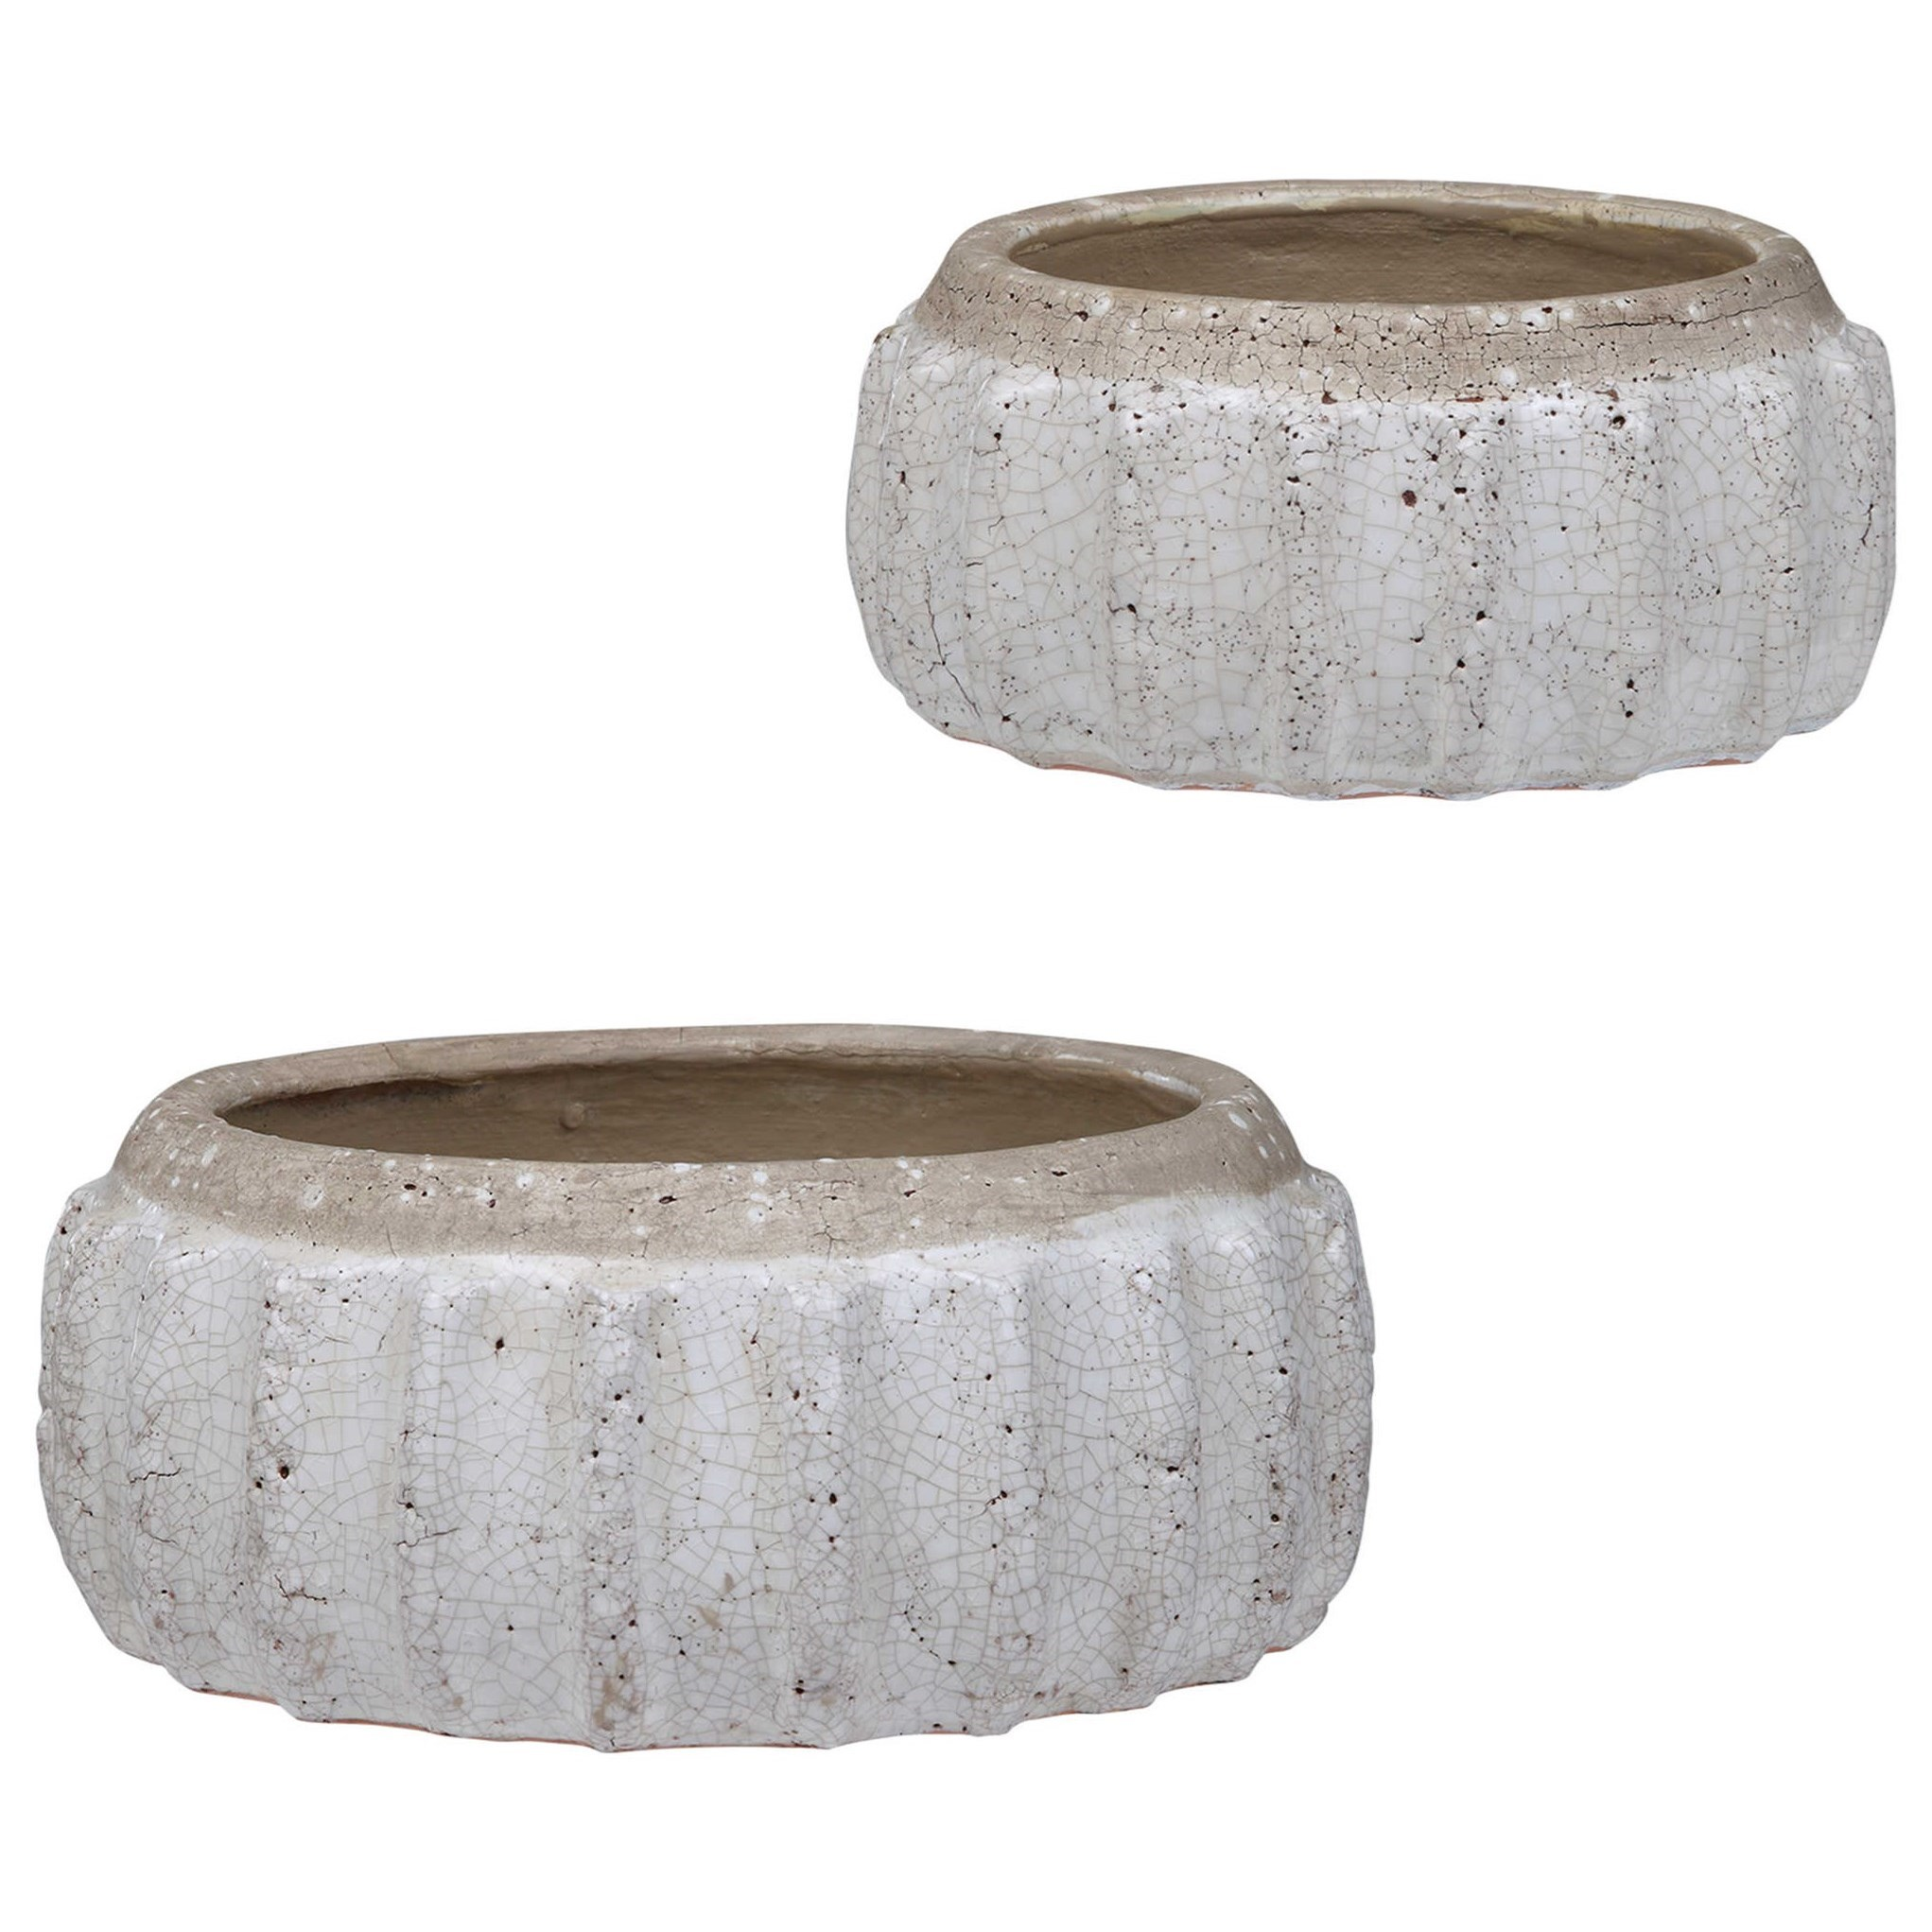 Accessories Azariah Distressed Bowls, S/2 by Uttermost at Suburban Furniture